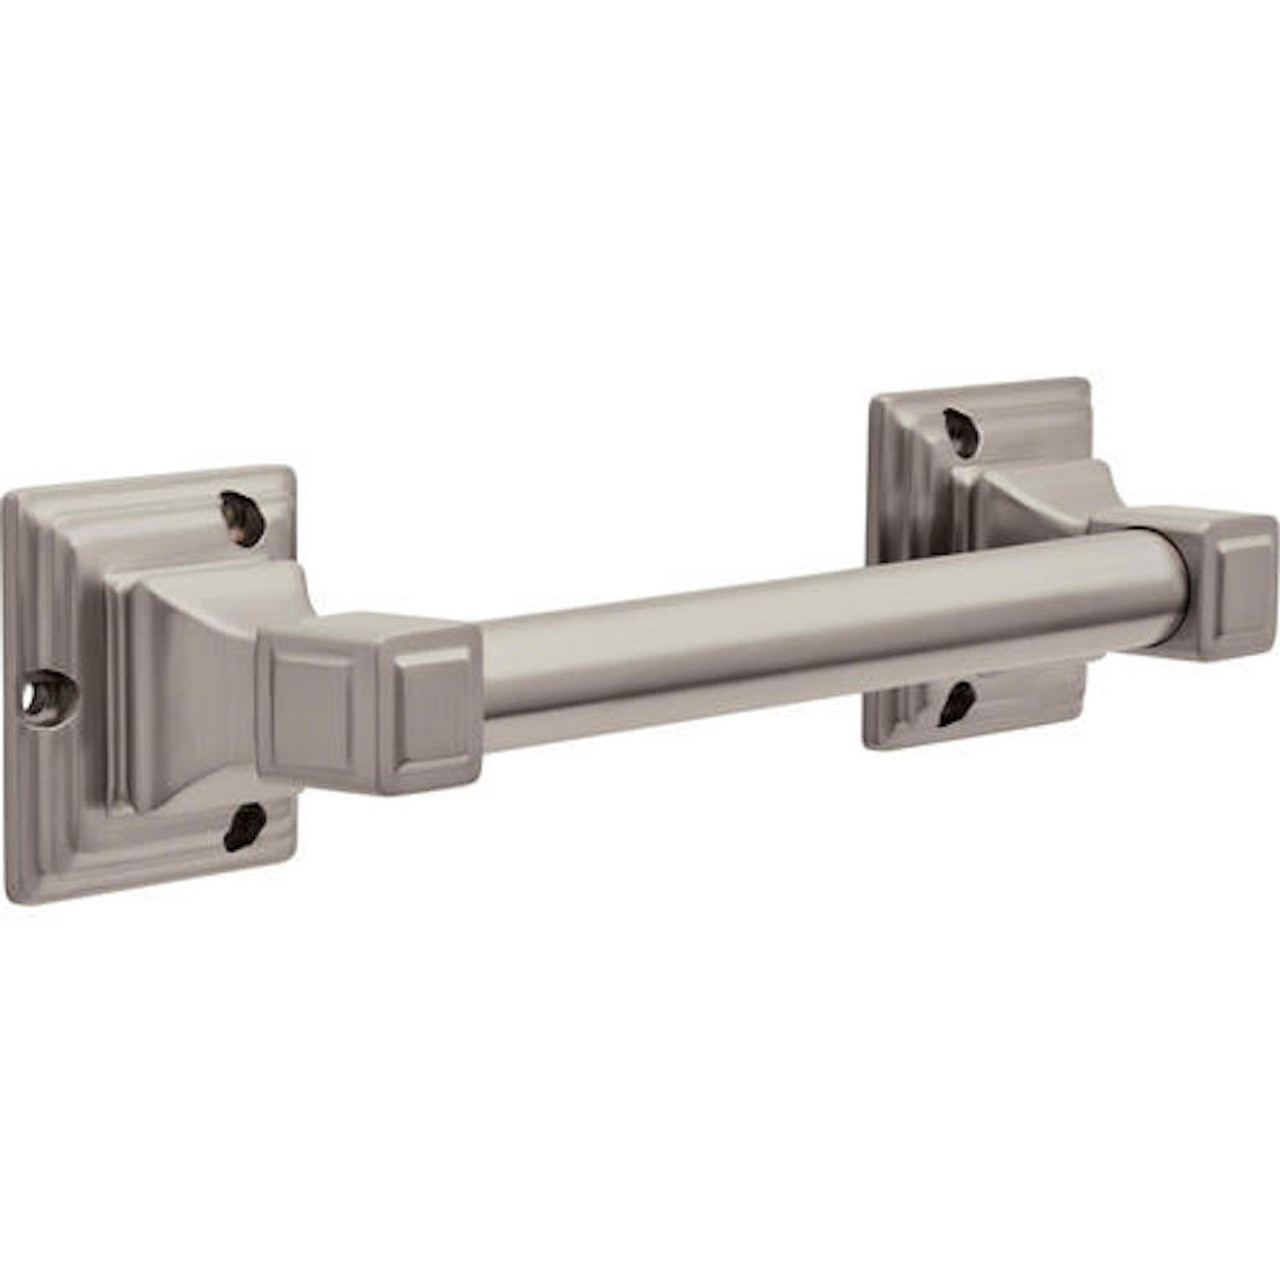 "Delta Lakewood 9"" Assist Bar in Spotshield  Brushed Nickel Finish"